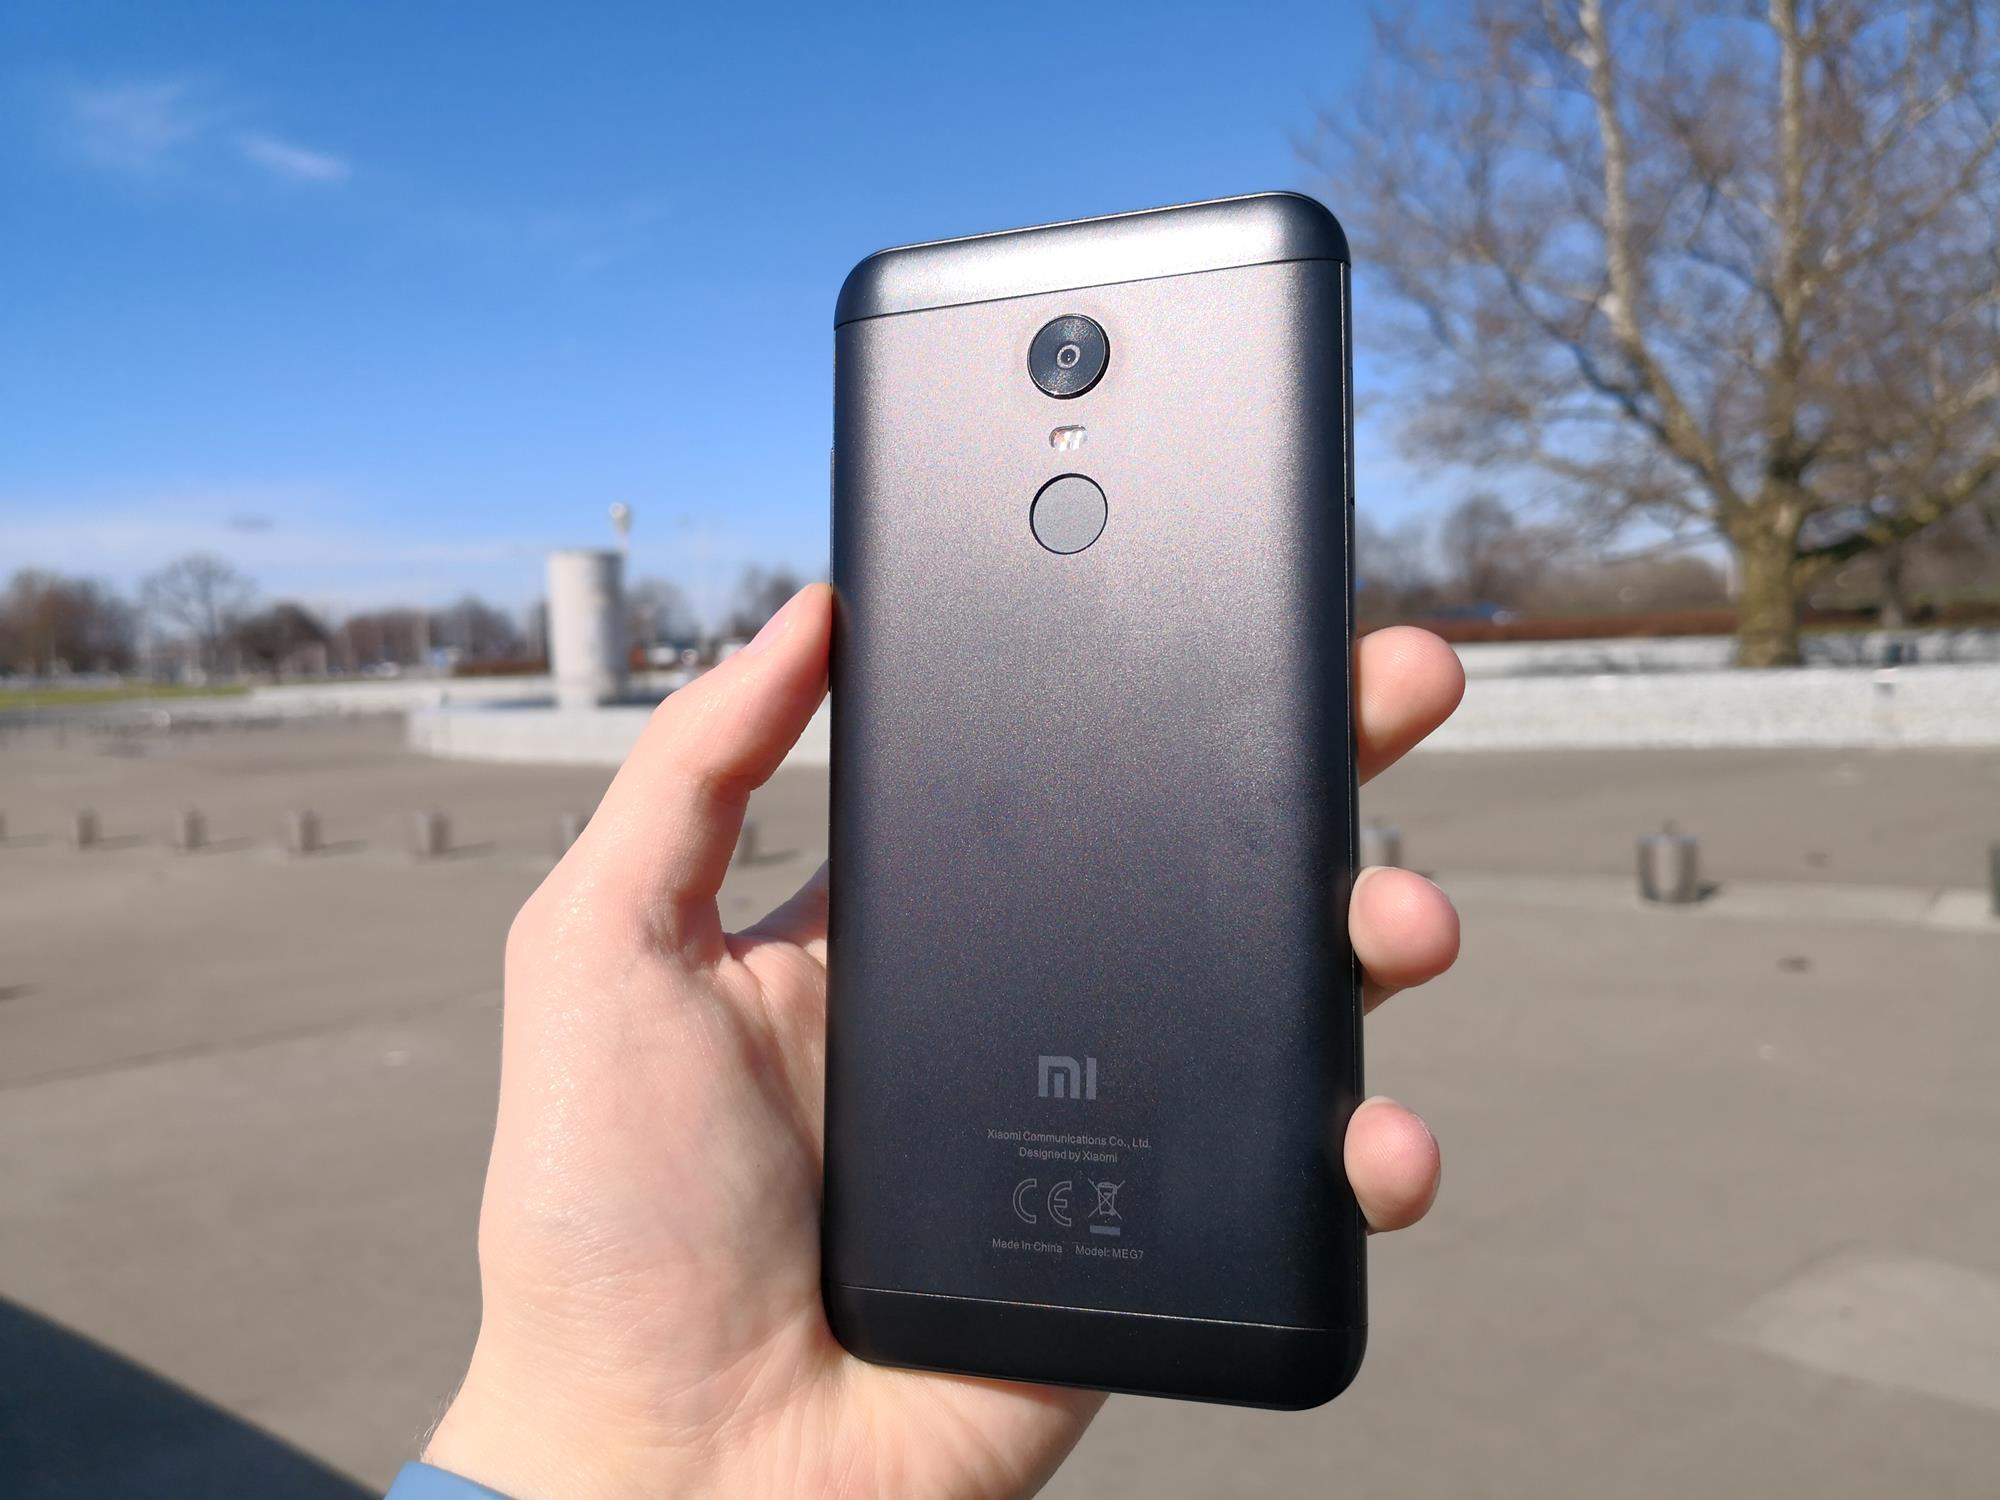 Xiaomi Redmi S2 Reveals More Information About Yourself 5 Plus Ram 4gb Internal 64gb Snapdragon Black A Few Days Ago We Learned The Presence Of And There Was New This Model From Official Source